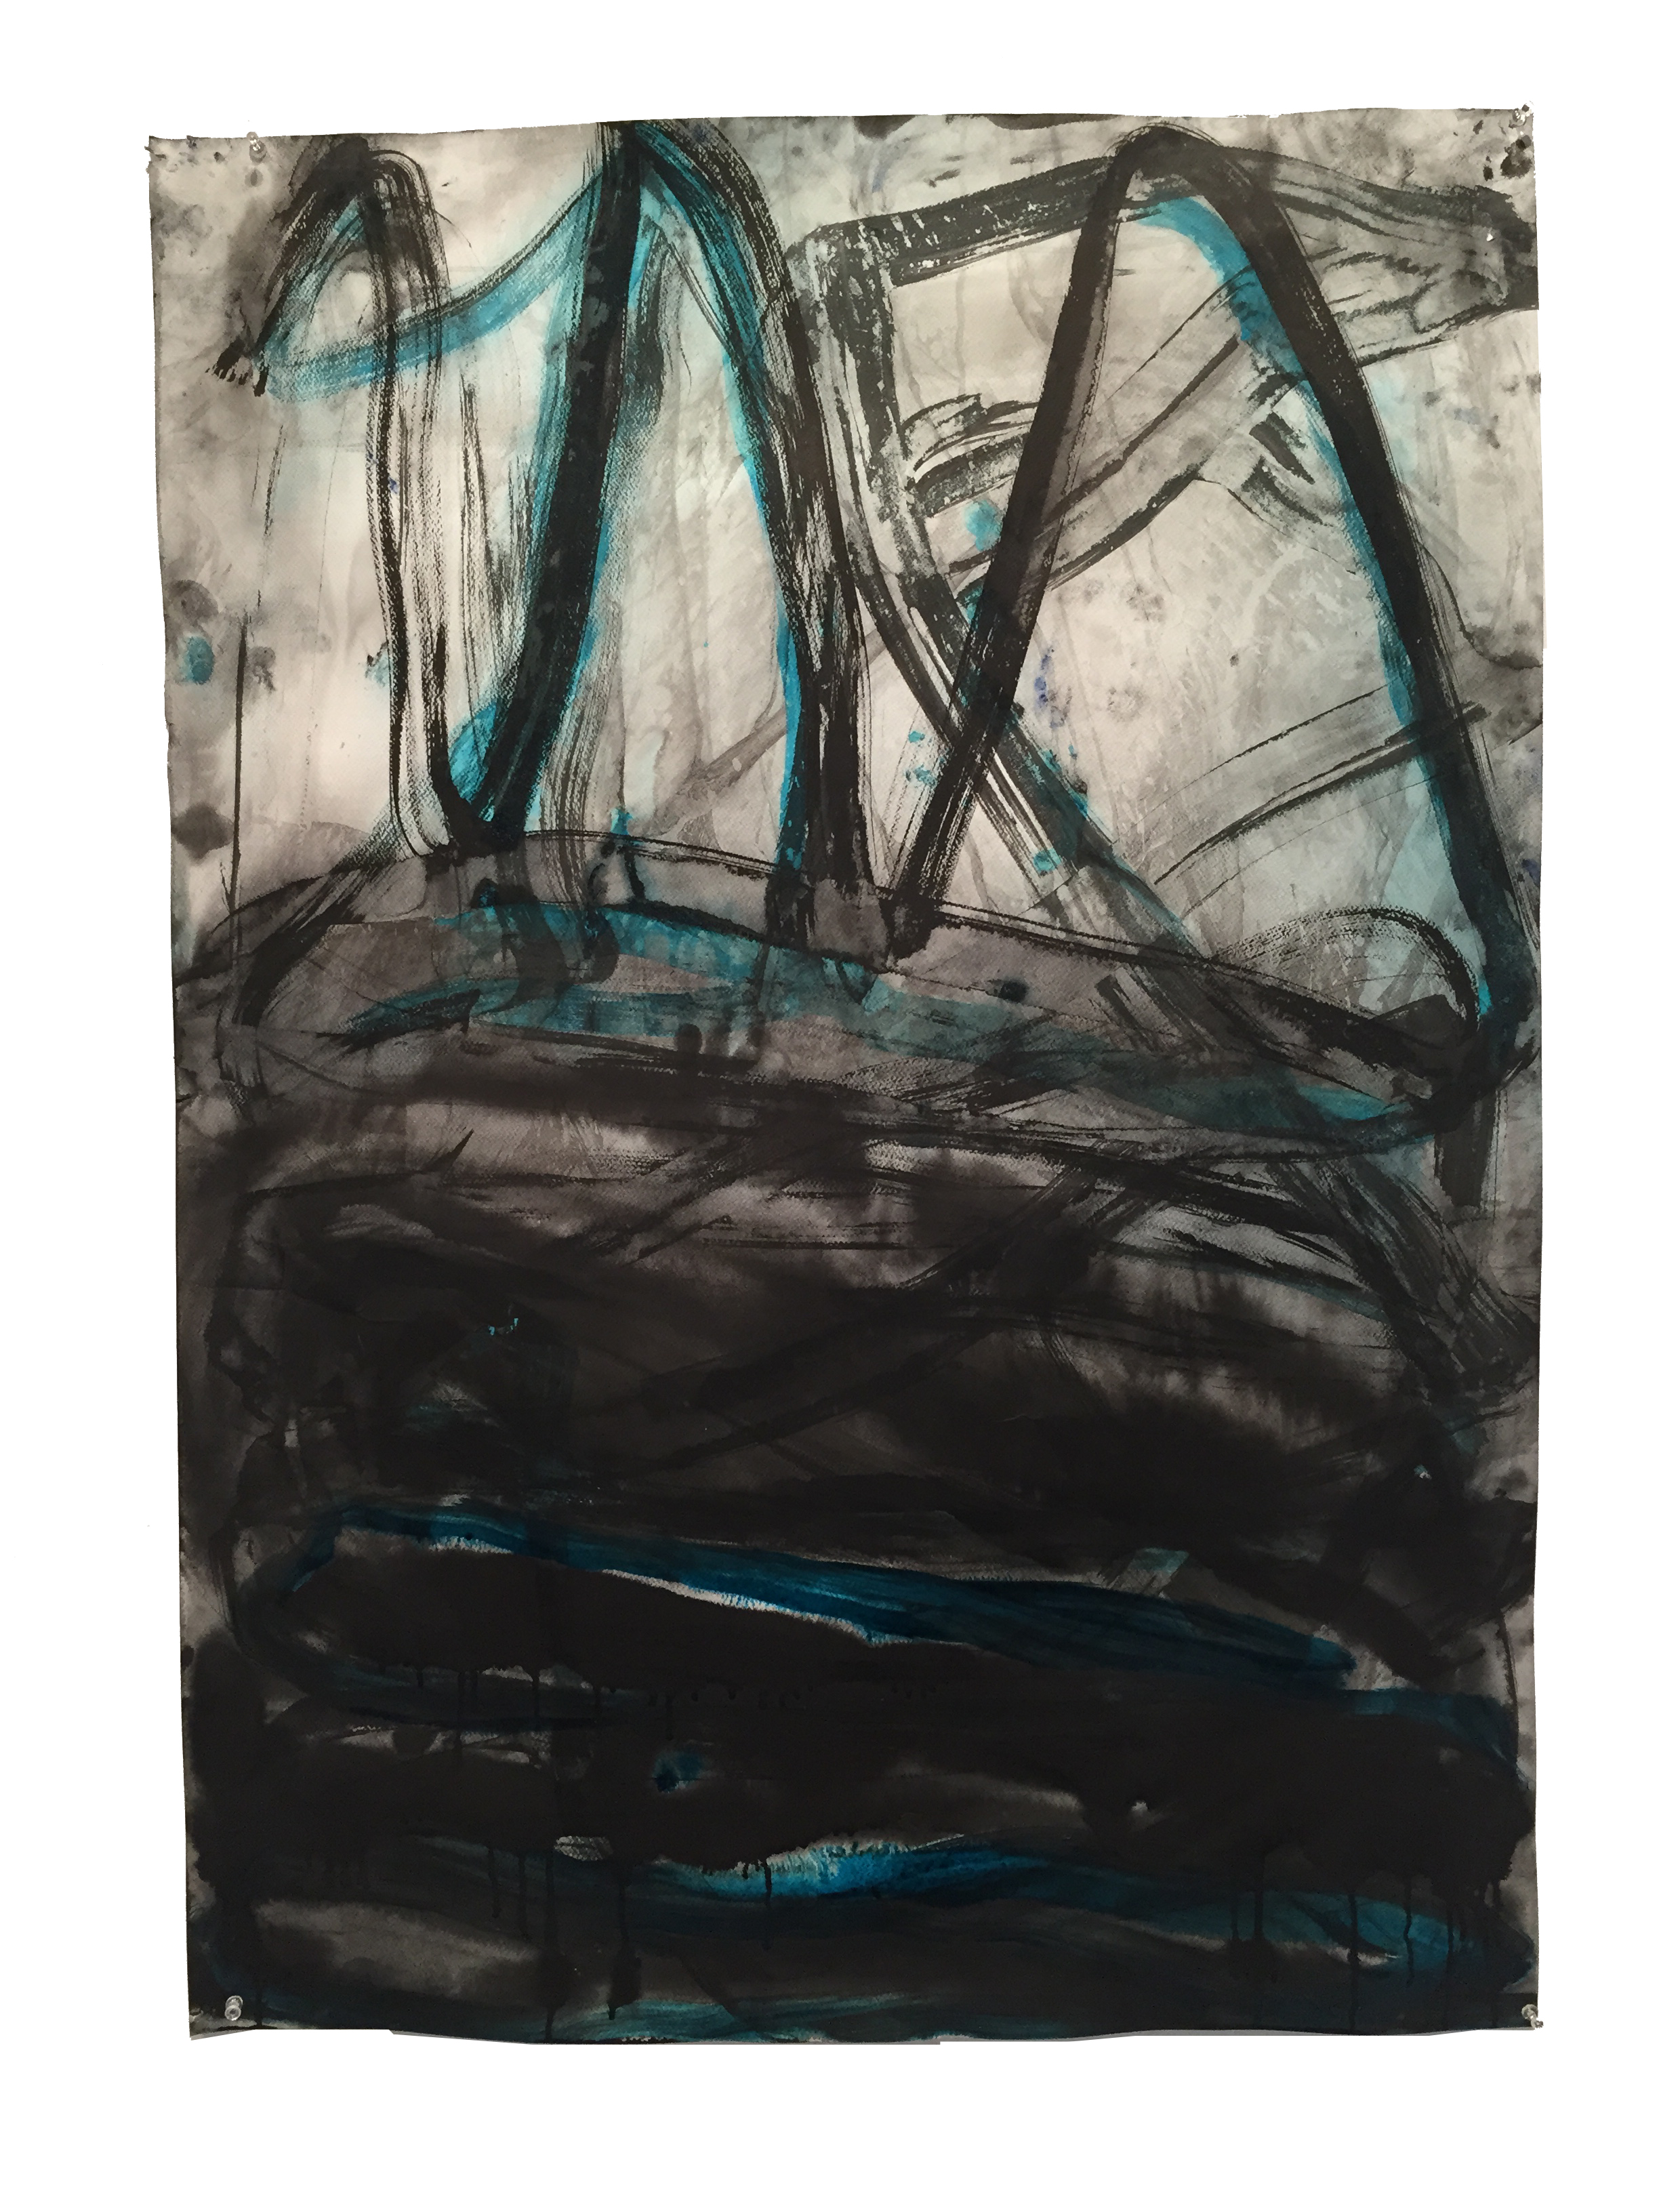 "41"" x 29 1/2"", ink & watercolor on paper, 2015 - $1,200"